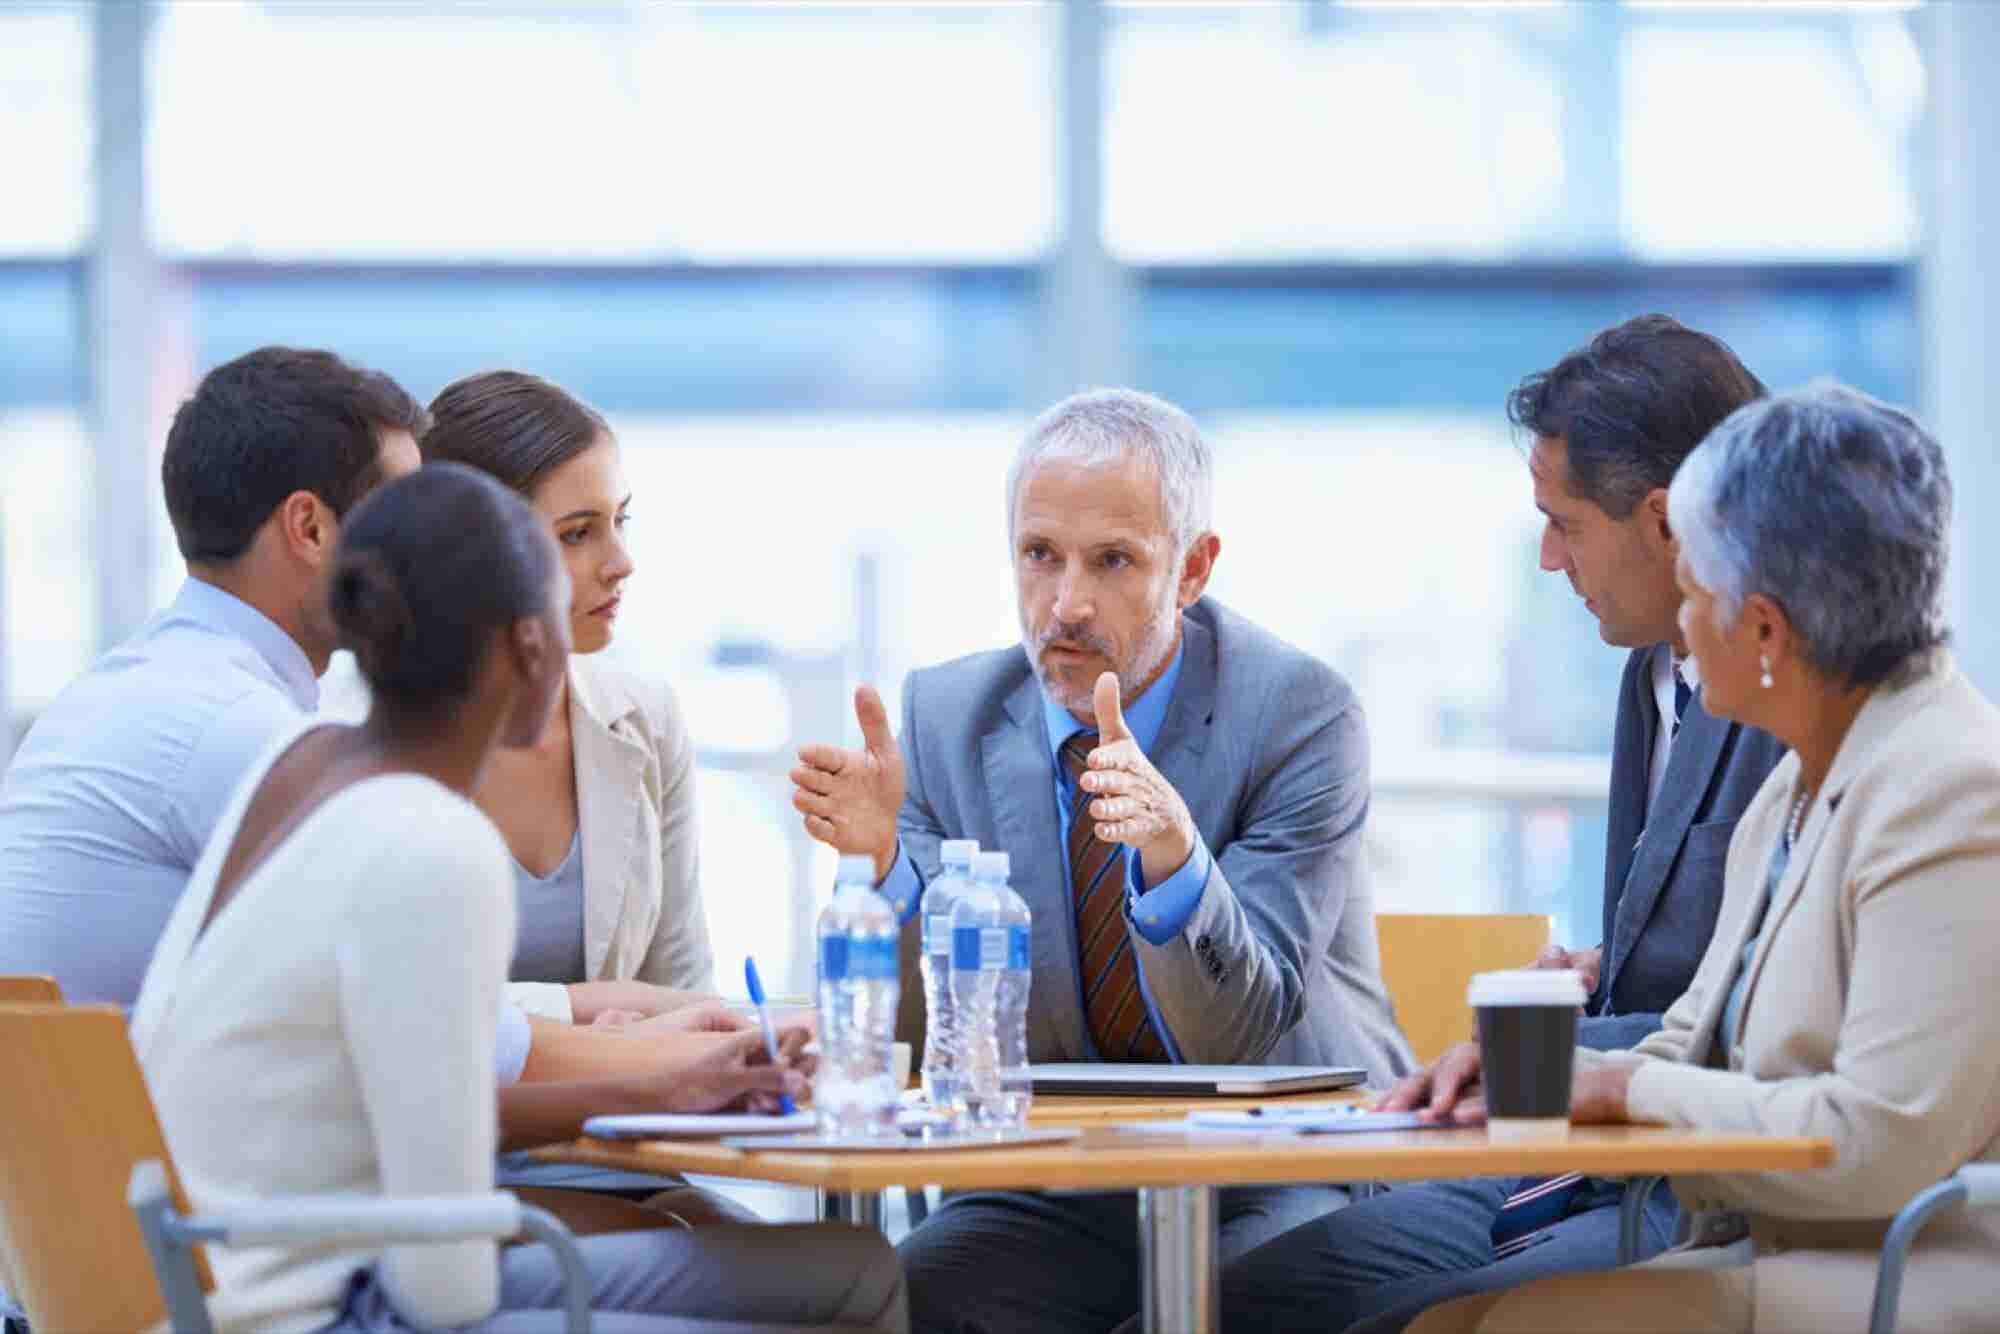 6 Things Leaders Do to Set Themselves Apart From the Pack